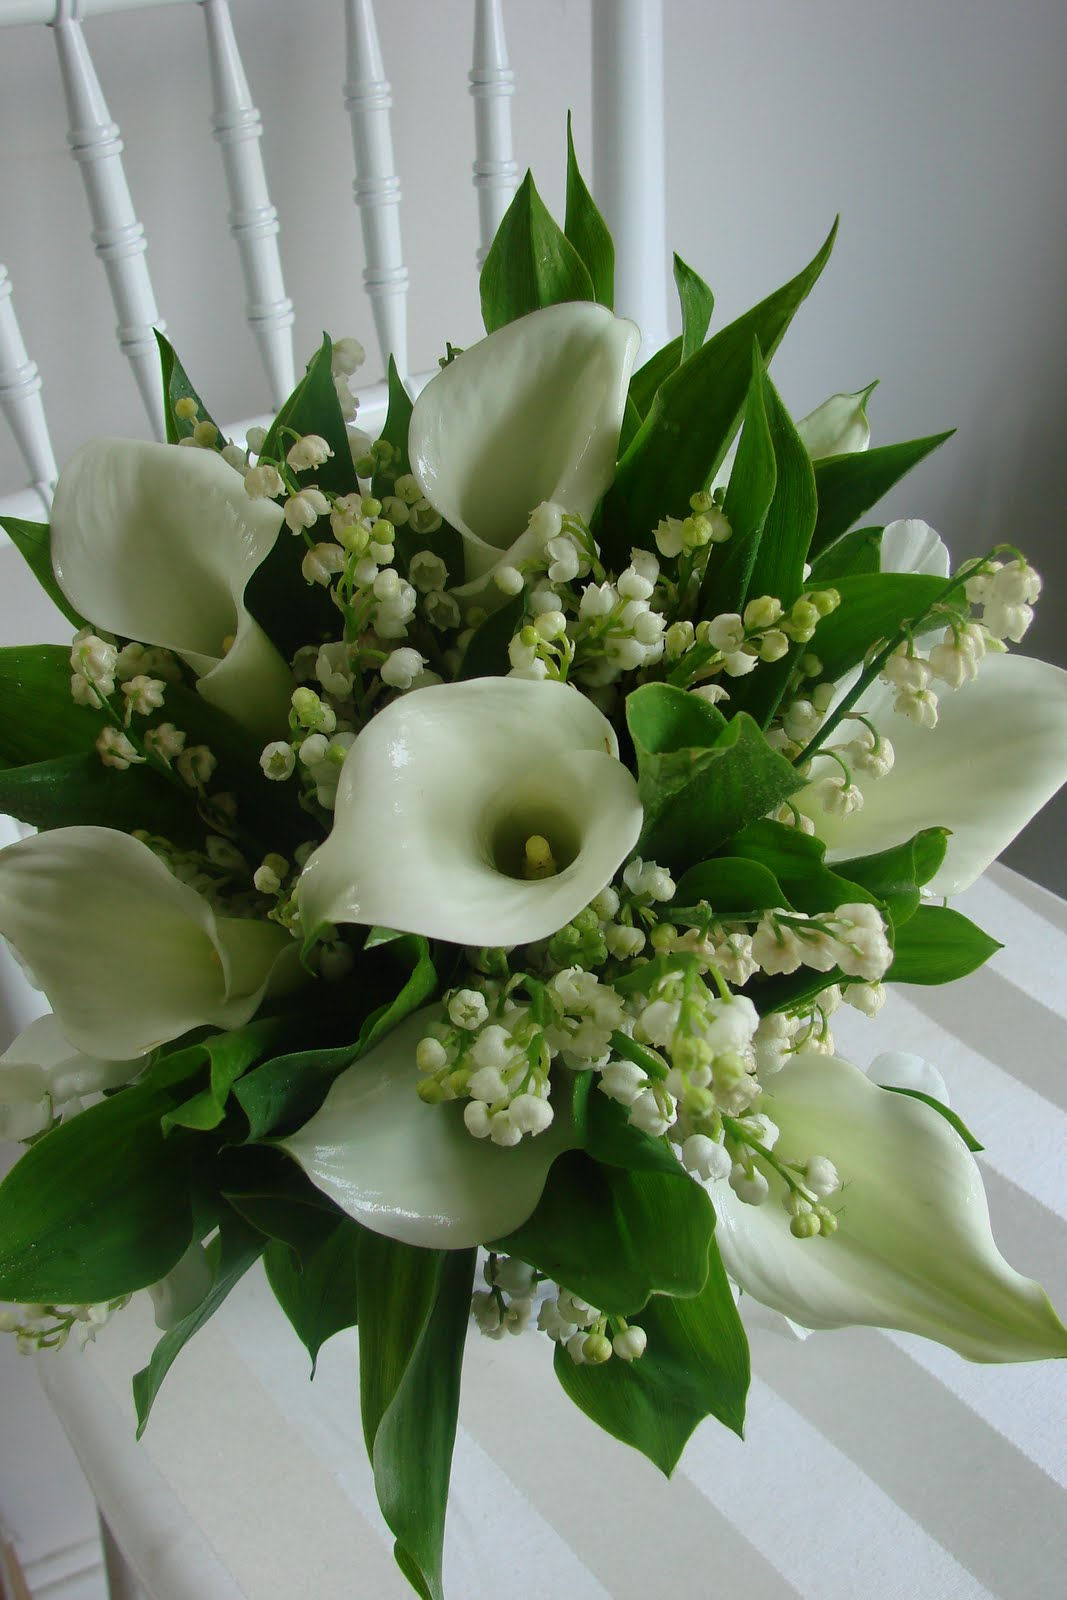 Lily of the valley and white rose bouquet google otsing kevad ja lily of the valley and white rose bouquet google otsing kevad ja piibelehed spring and lily of the valley pinterest white rose bouquet izmirmasajfo